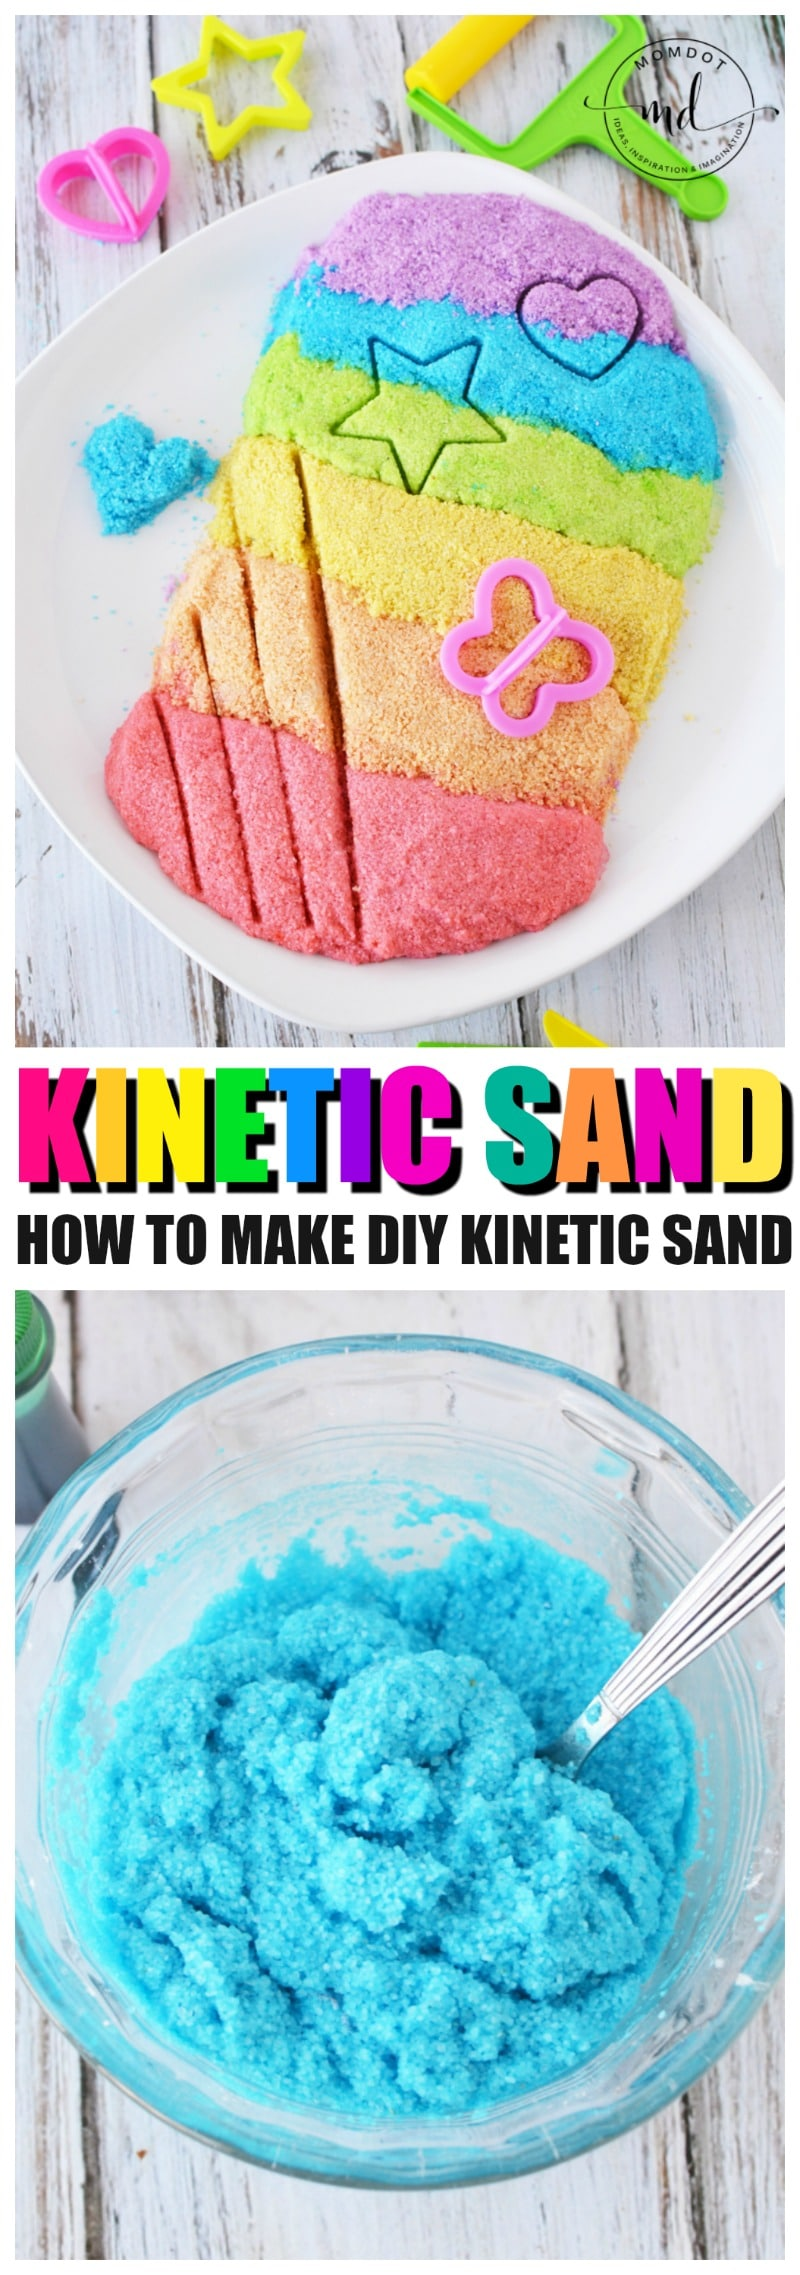 Kinetic Sand Recipe, how to make kinetic sand at home with this copycat DIY recipe